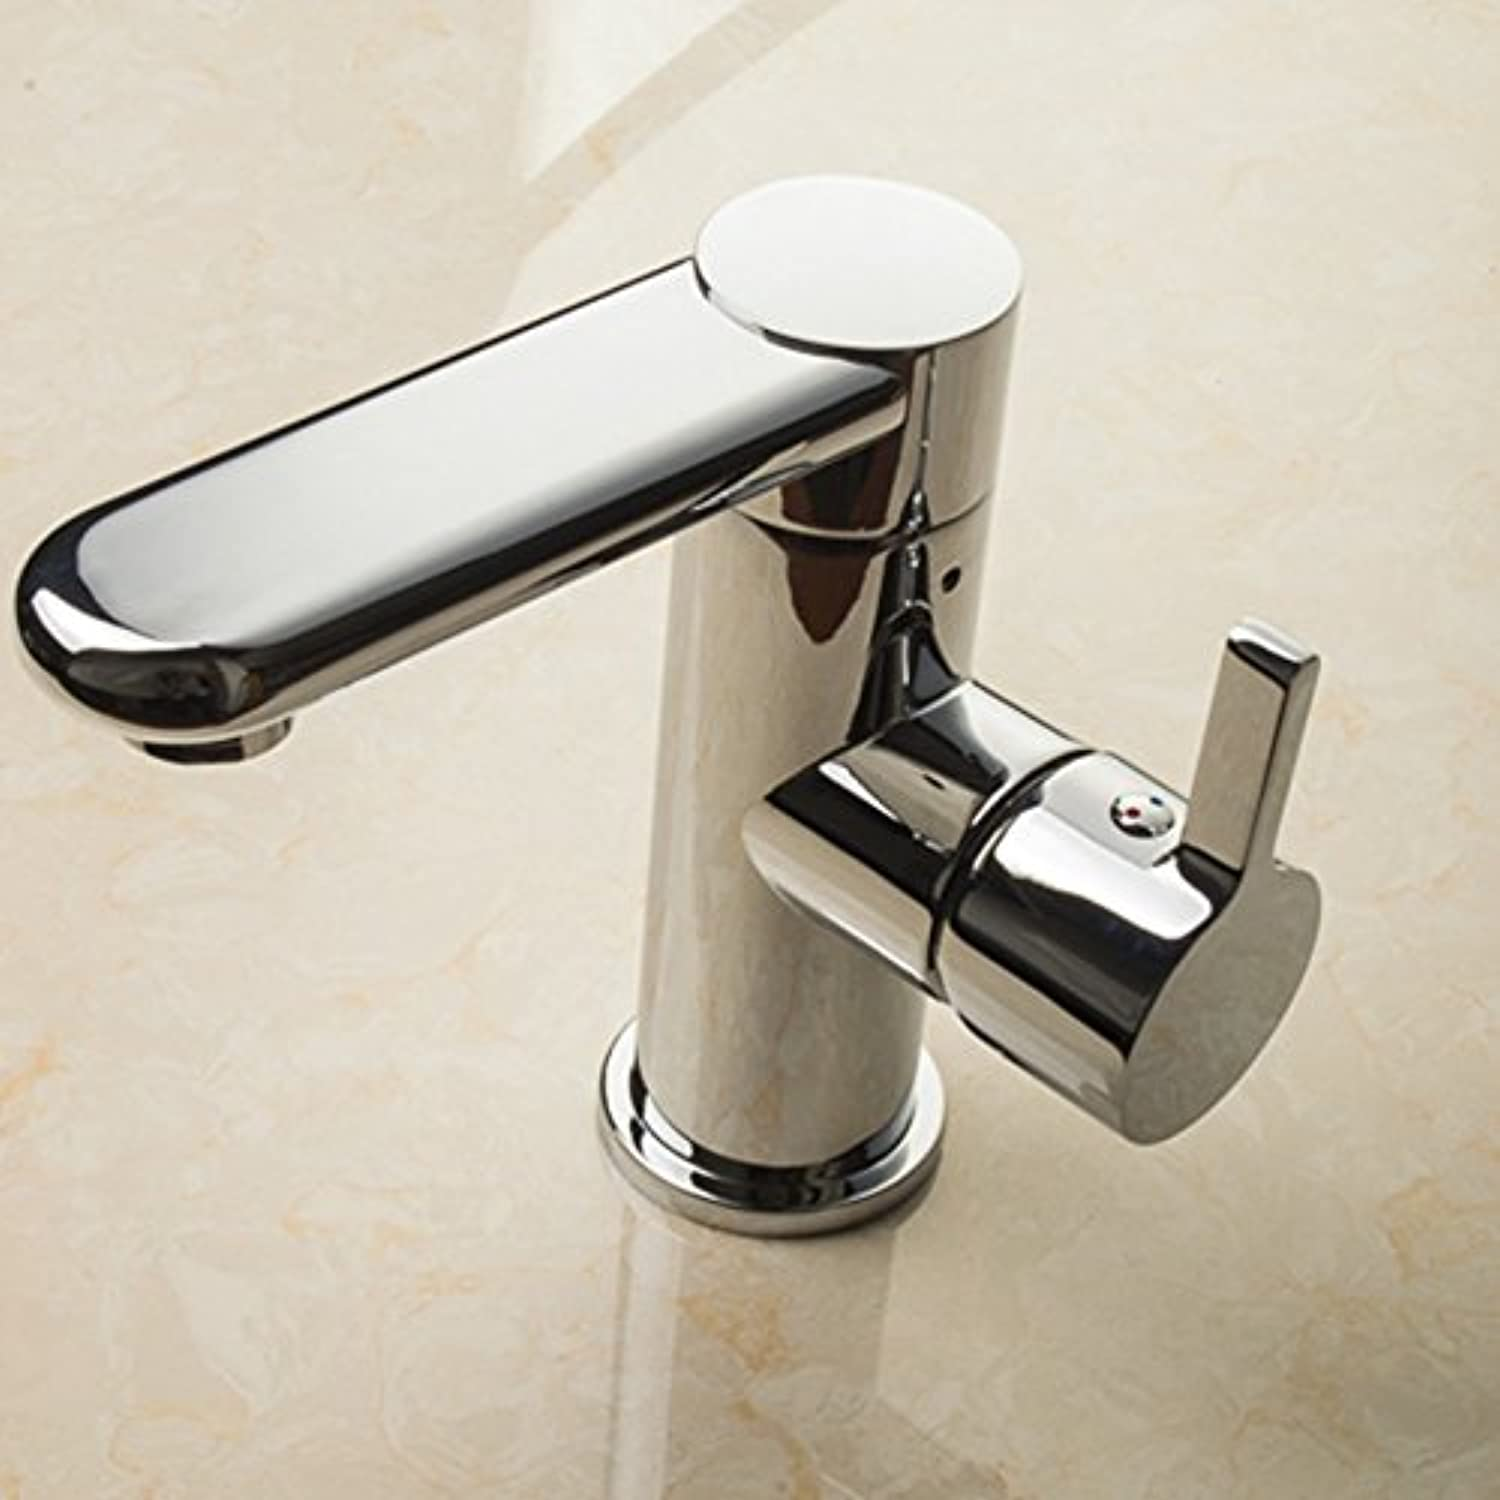 JIAHENGY Sink Mixer Faucet tap Creative modern trend fashion simple Vintage Brass Basin Tall Antique Brass Toilet Kitchen bathroom